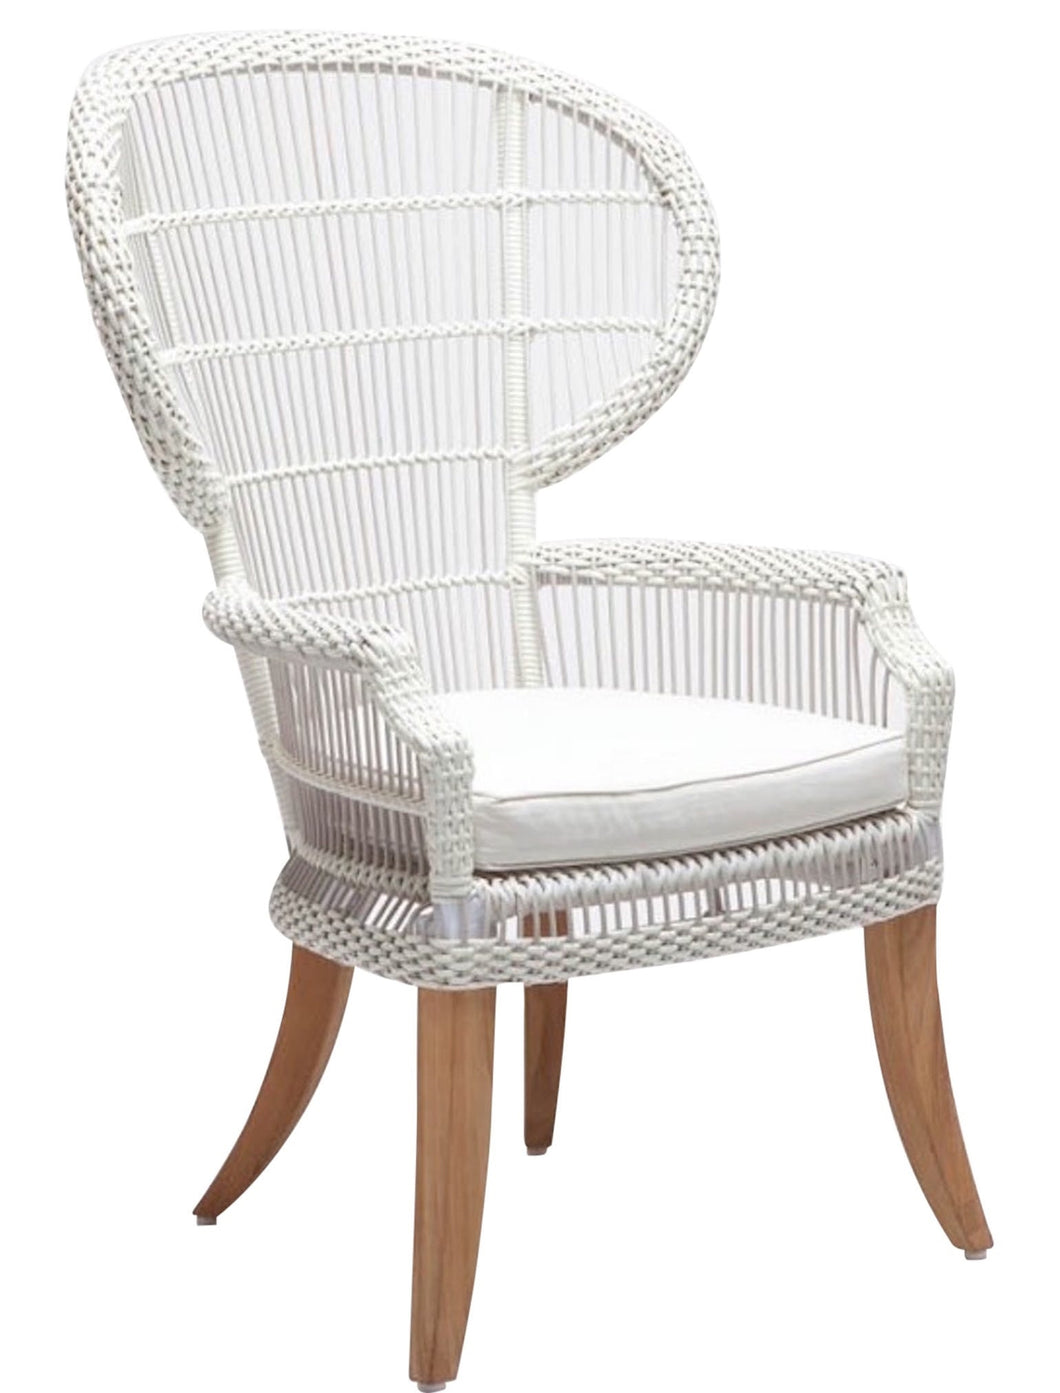 Aurora Dining Chair - Outdoor